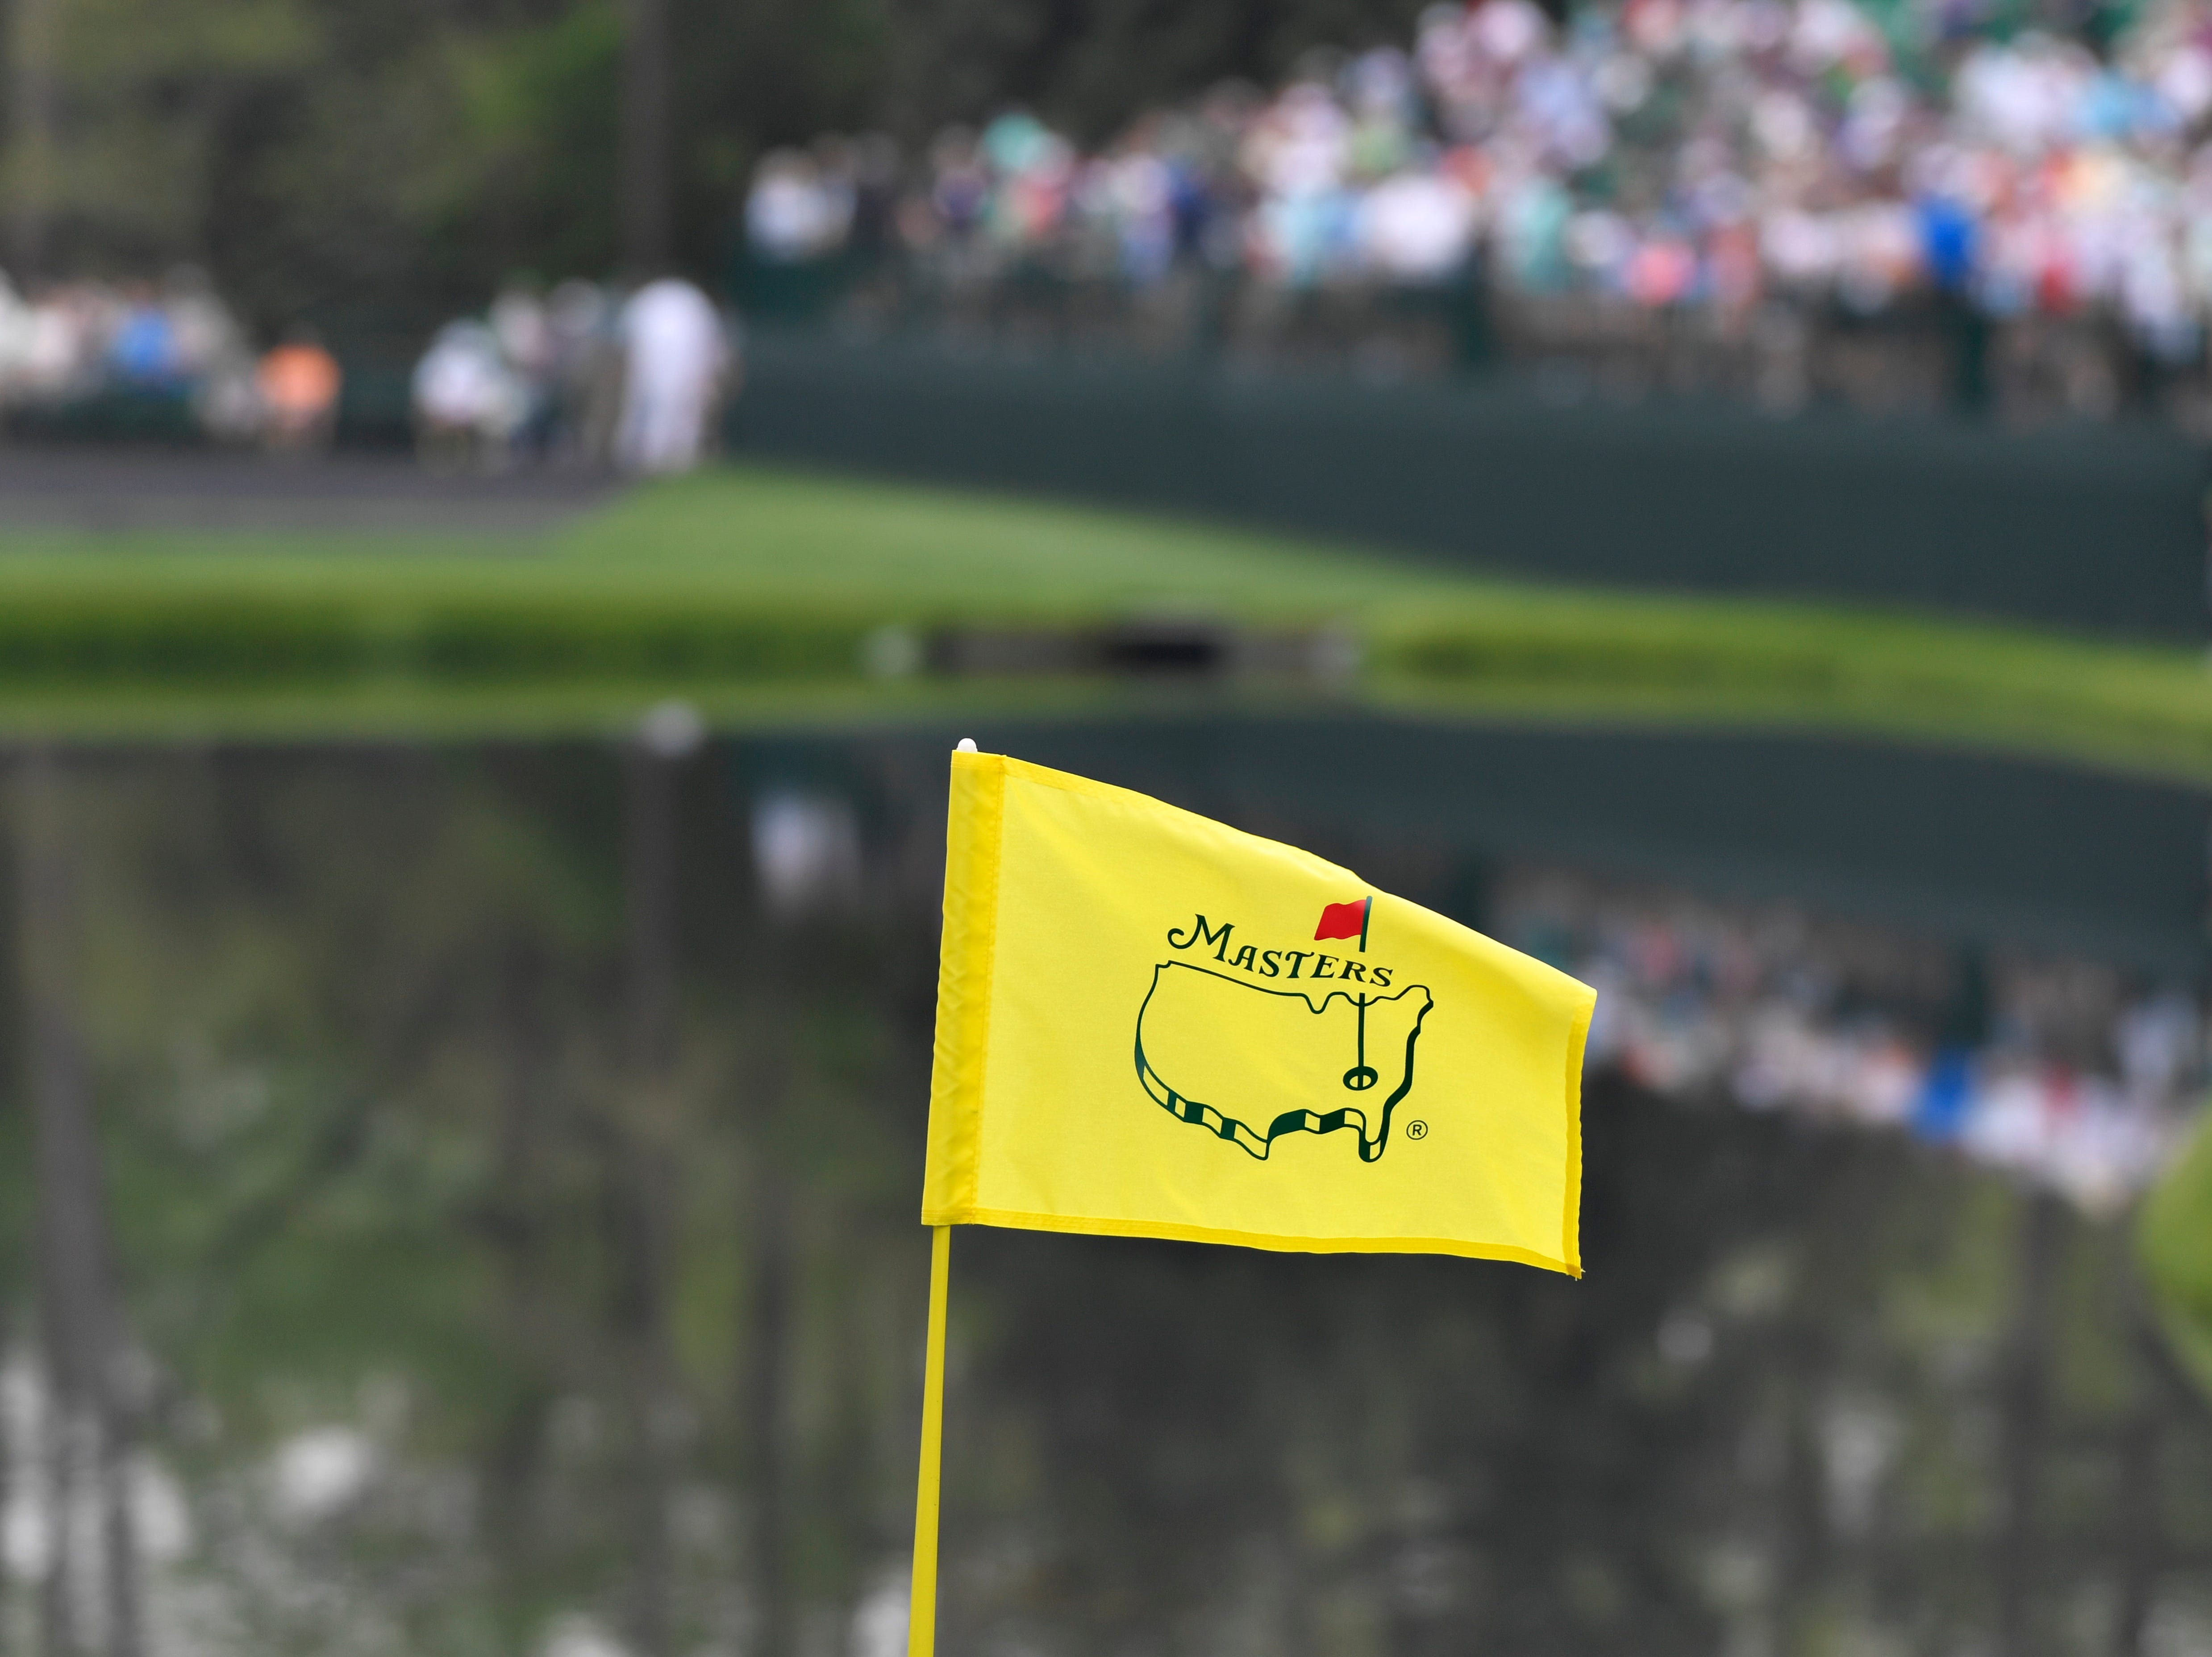 The flagstick at the 16th green during a practice round for the Masters golf tournament at Augusta National Golf Club.